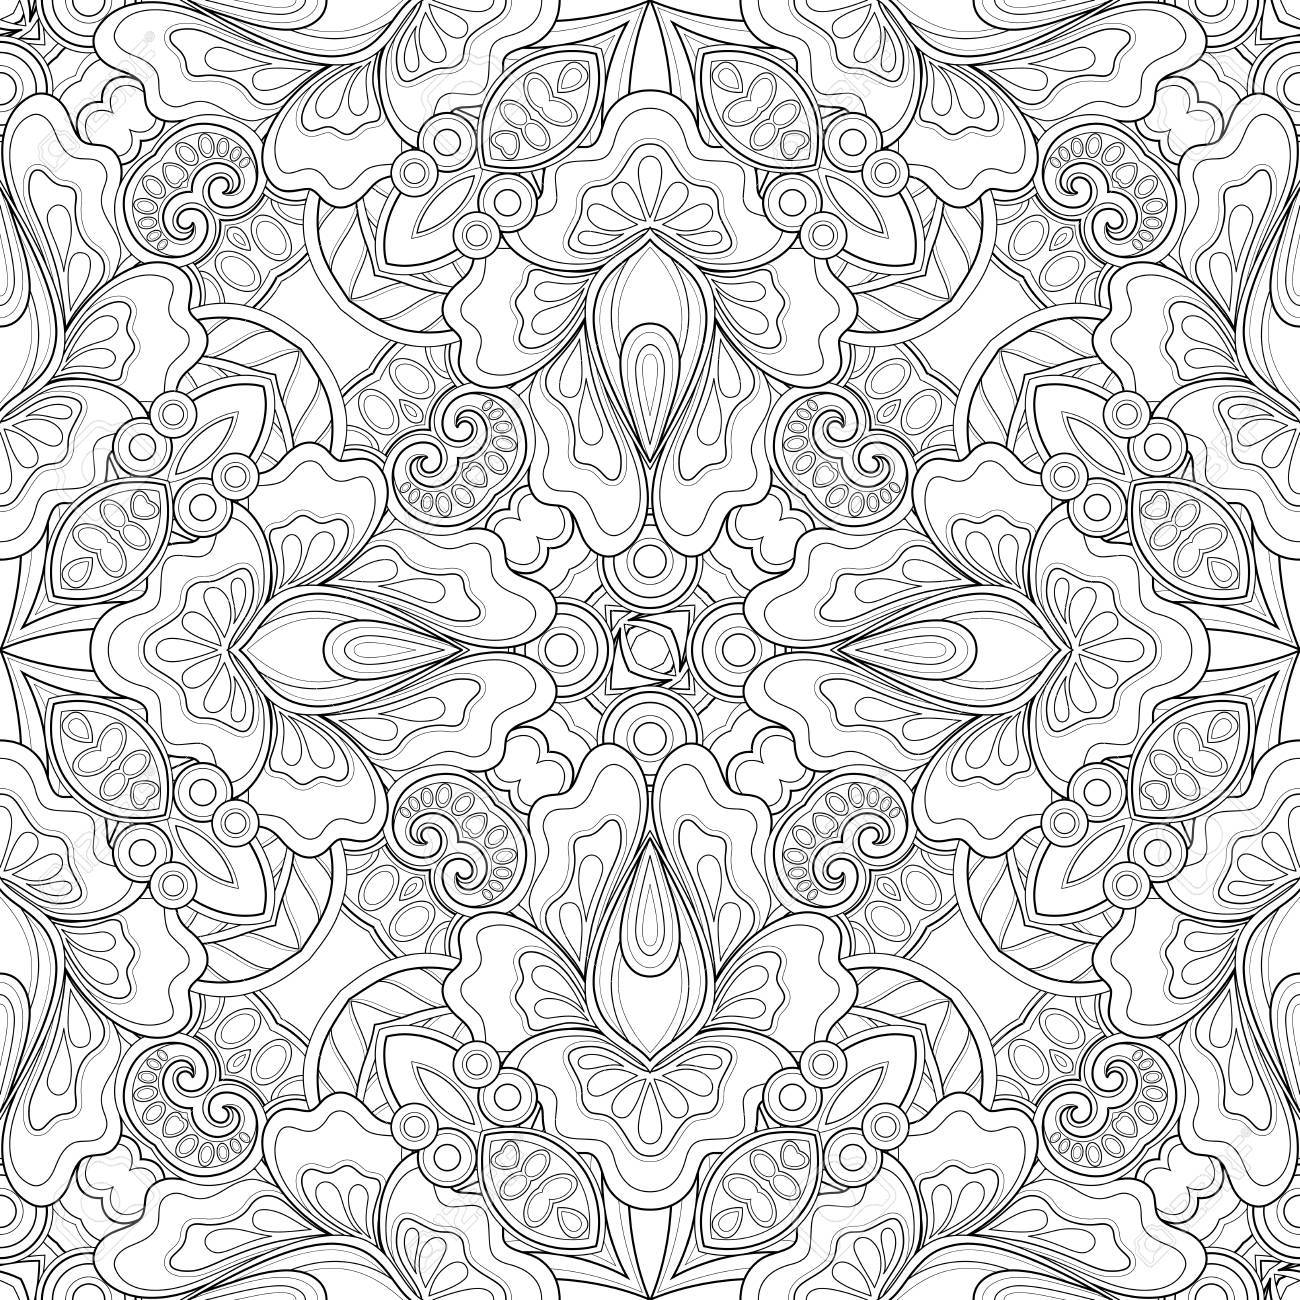 Tiles Coloring Pages - Coloring Home | 1300x1300